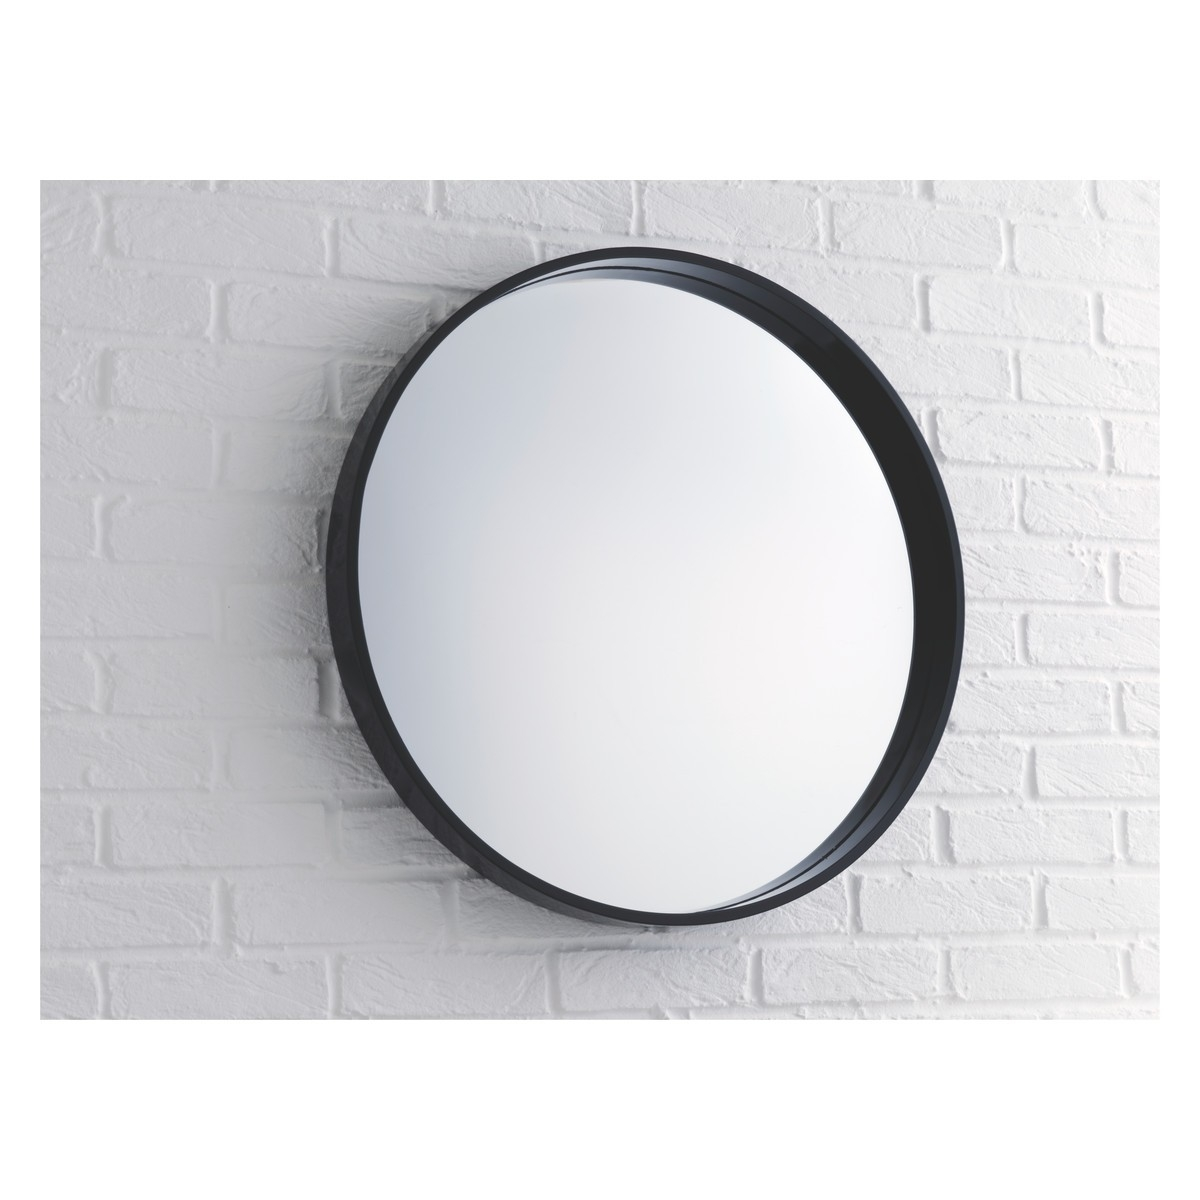 Aimee Black Round Wall Mirror D65cm Buy Now At Habitat Uk Throughout Mirror Circles For Walls (View 11 of 15)